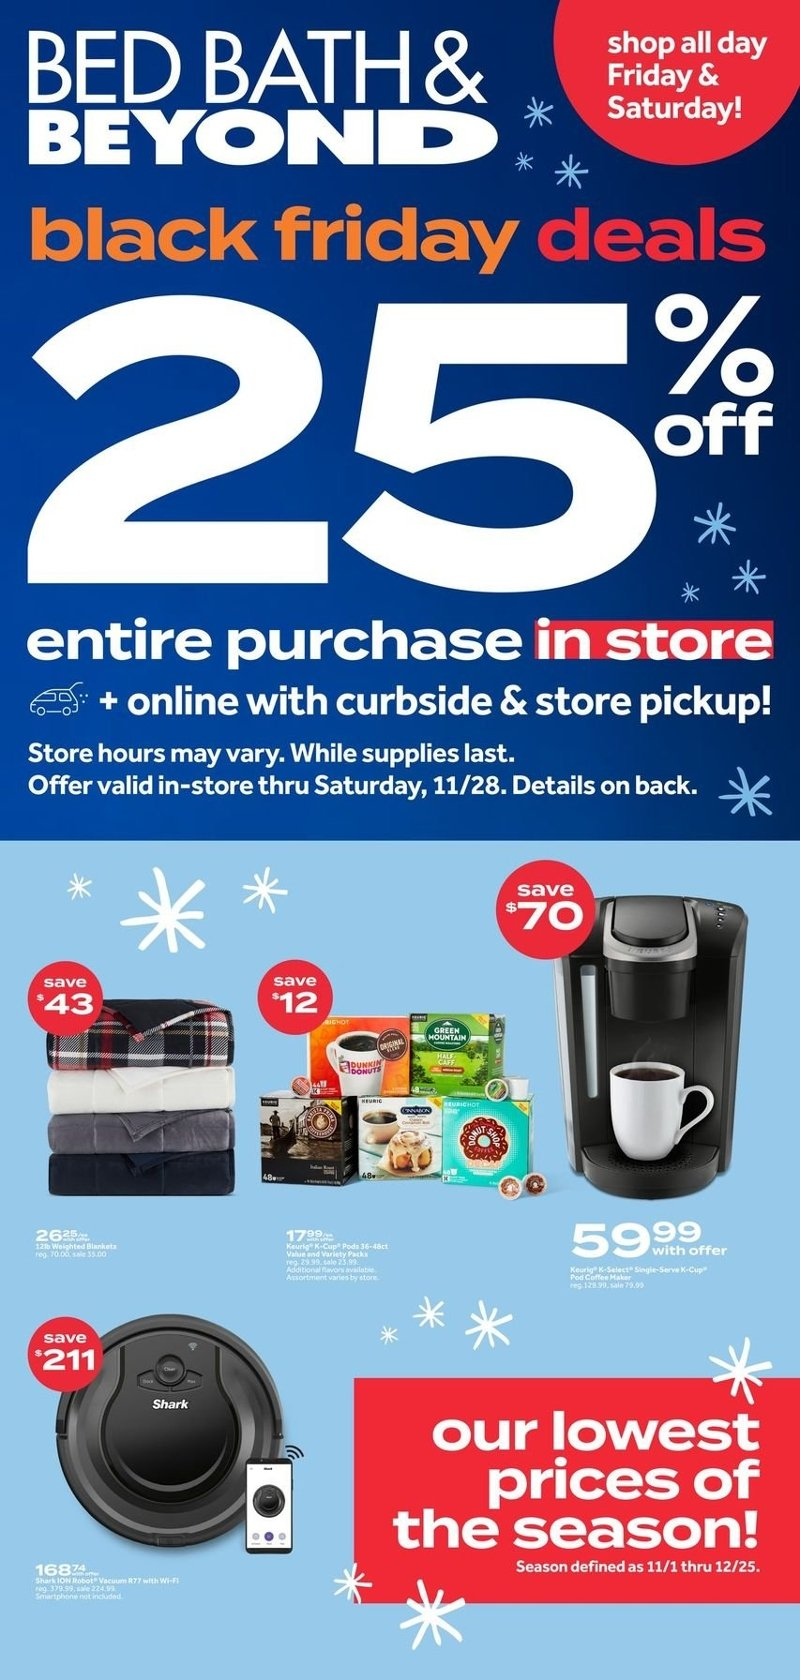 Bed Bath & Beyond Black Friday 2020 Page 1